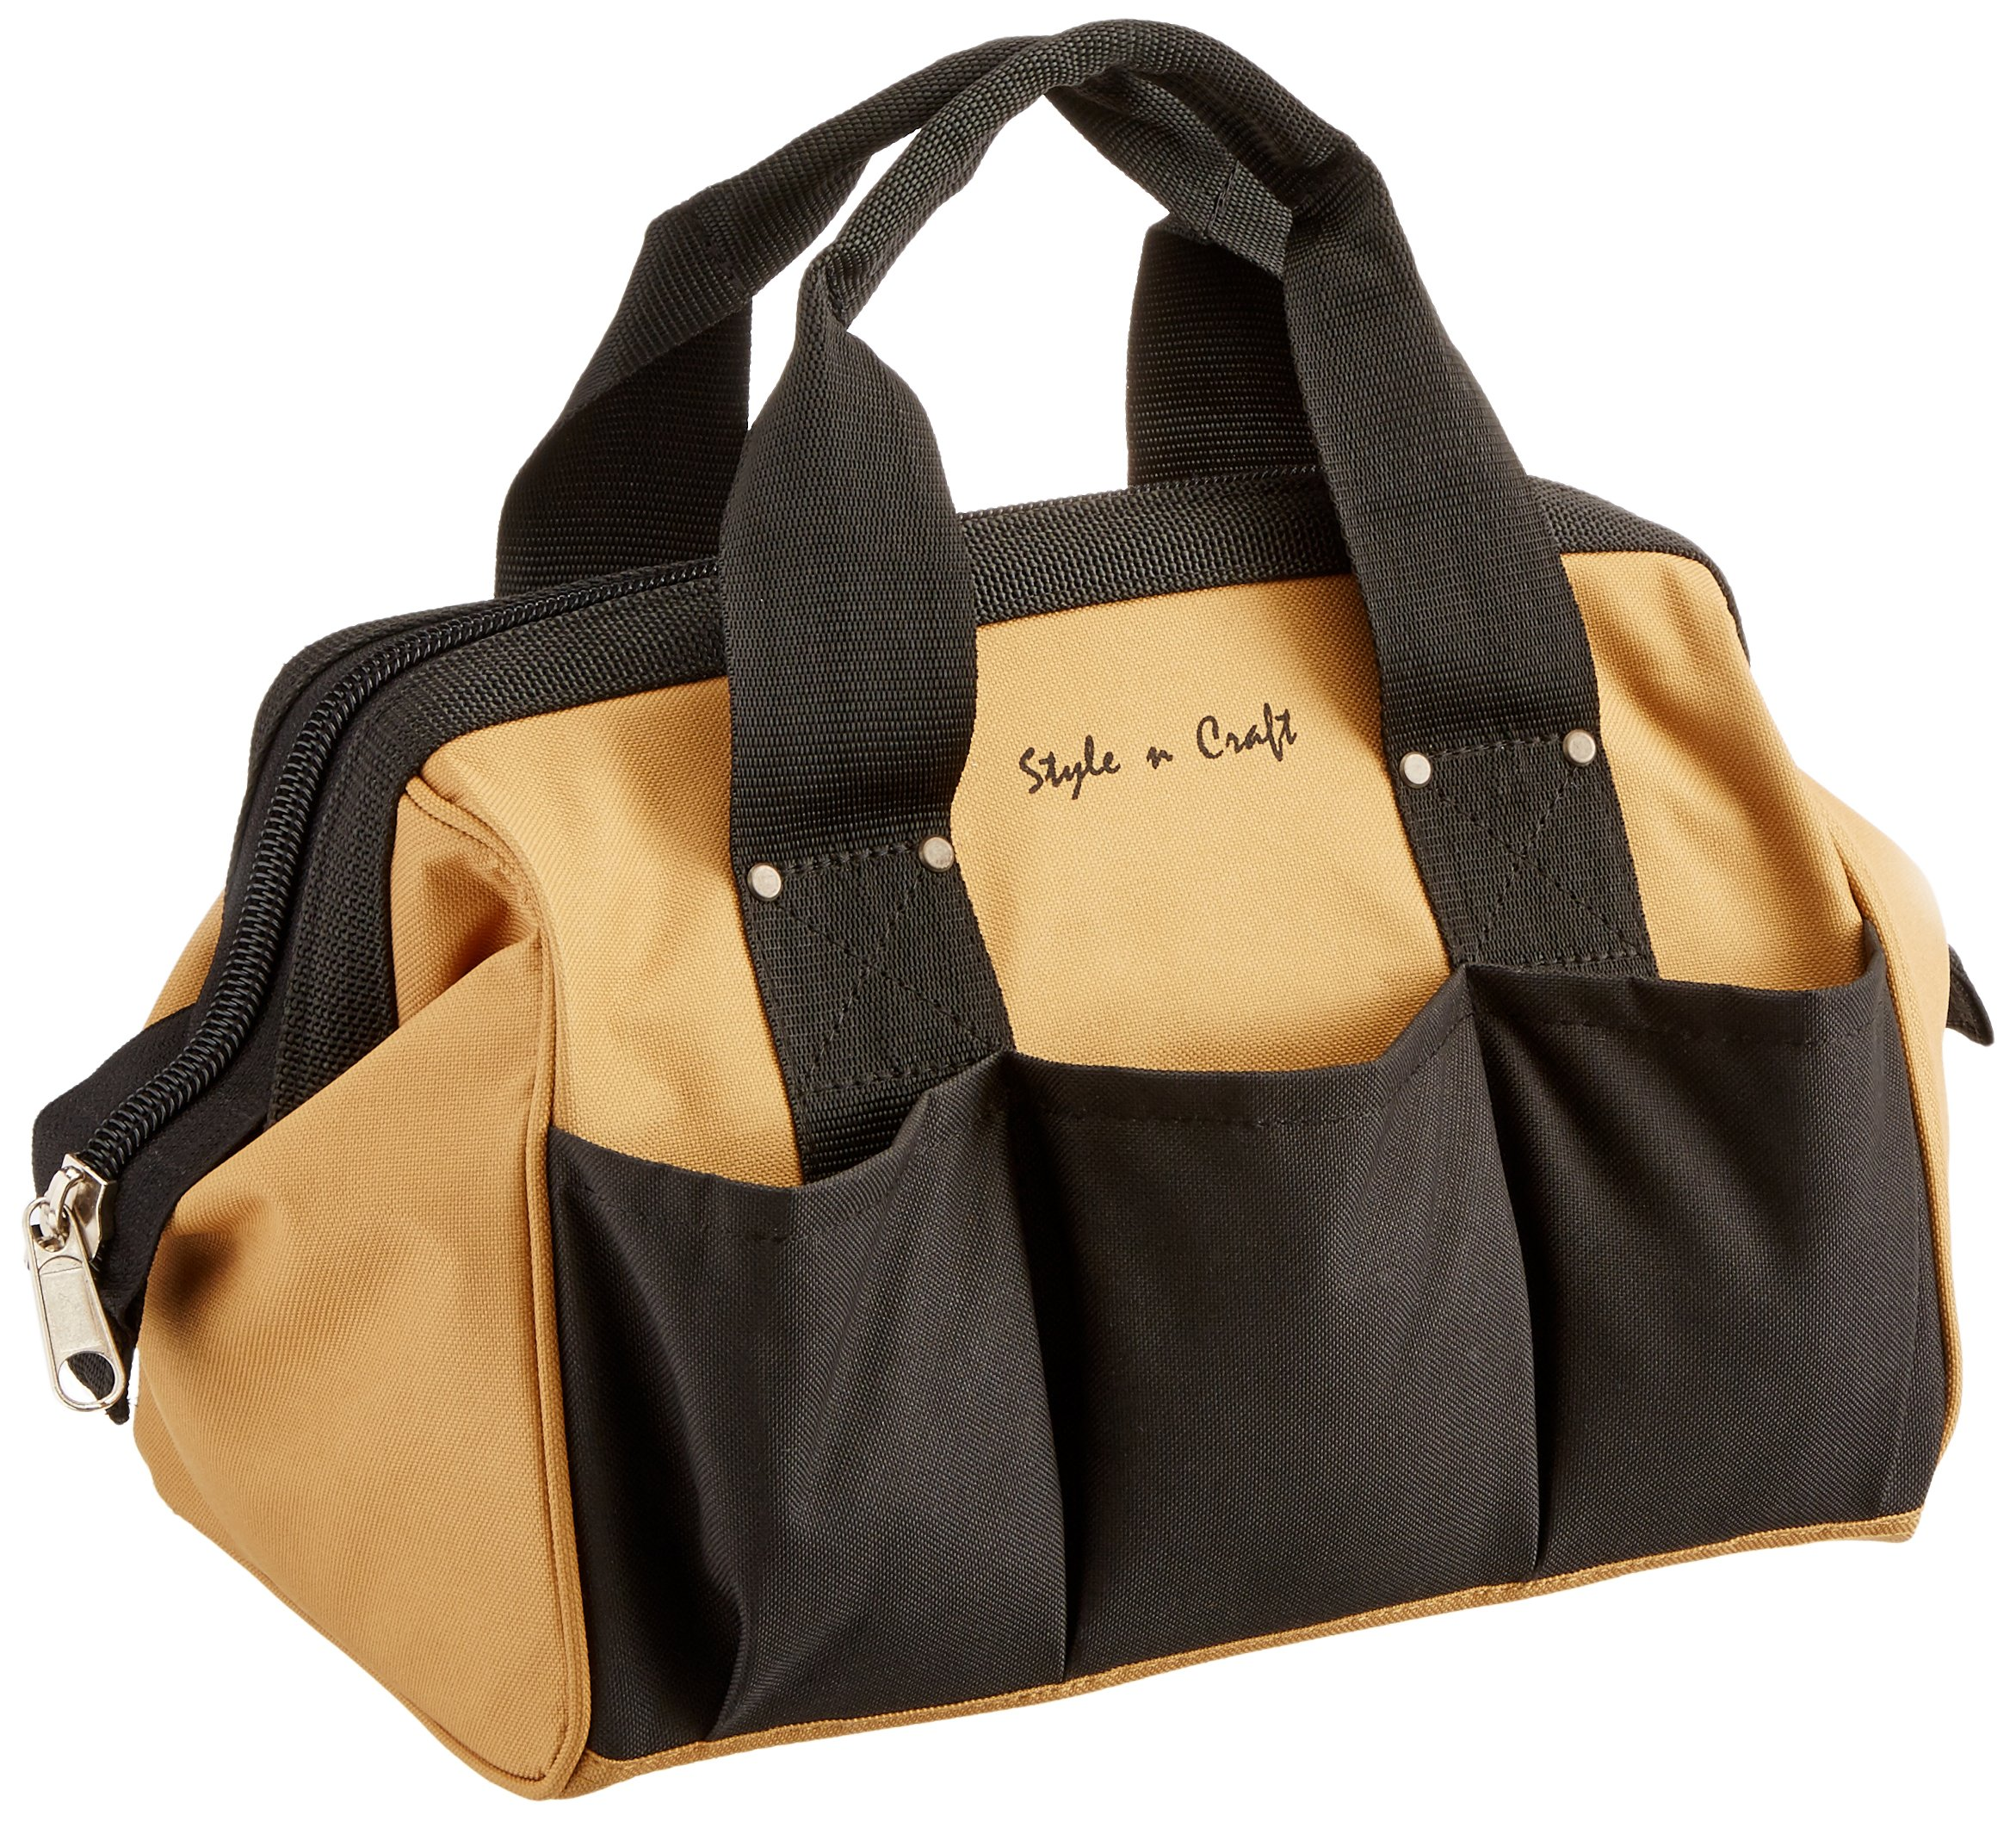 Style n Craft 76-510 23 Pocket 12-Inch Tote Bag in Polyester